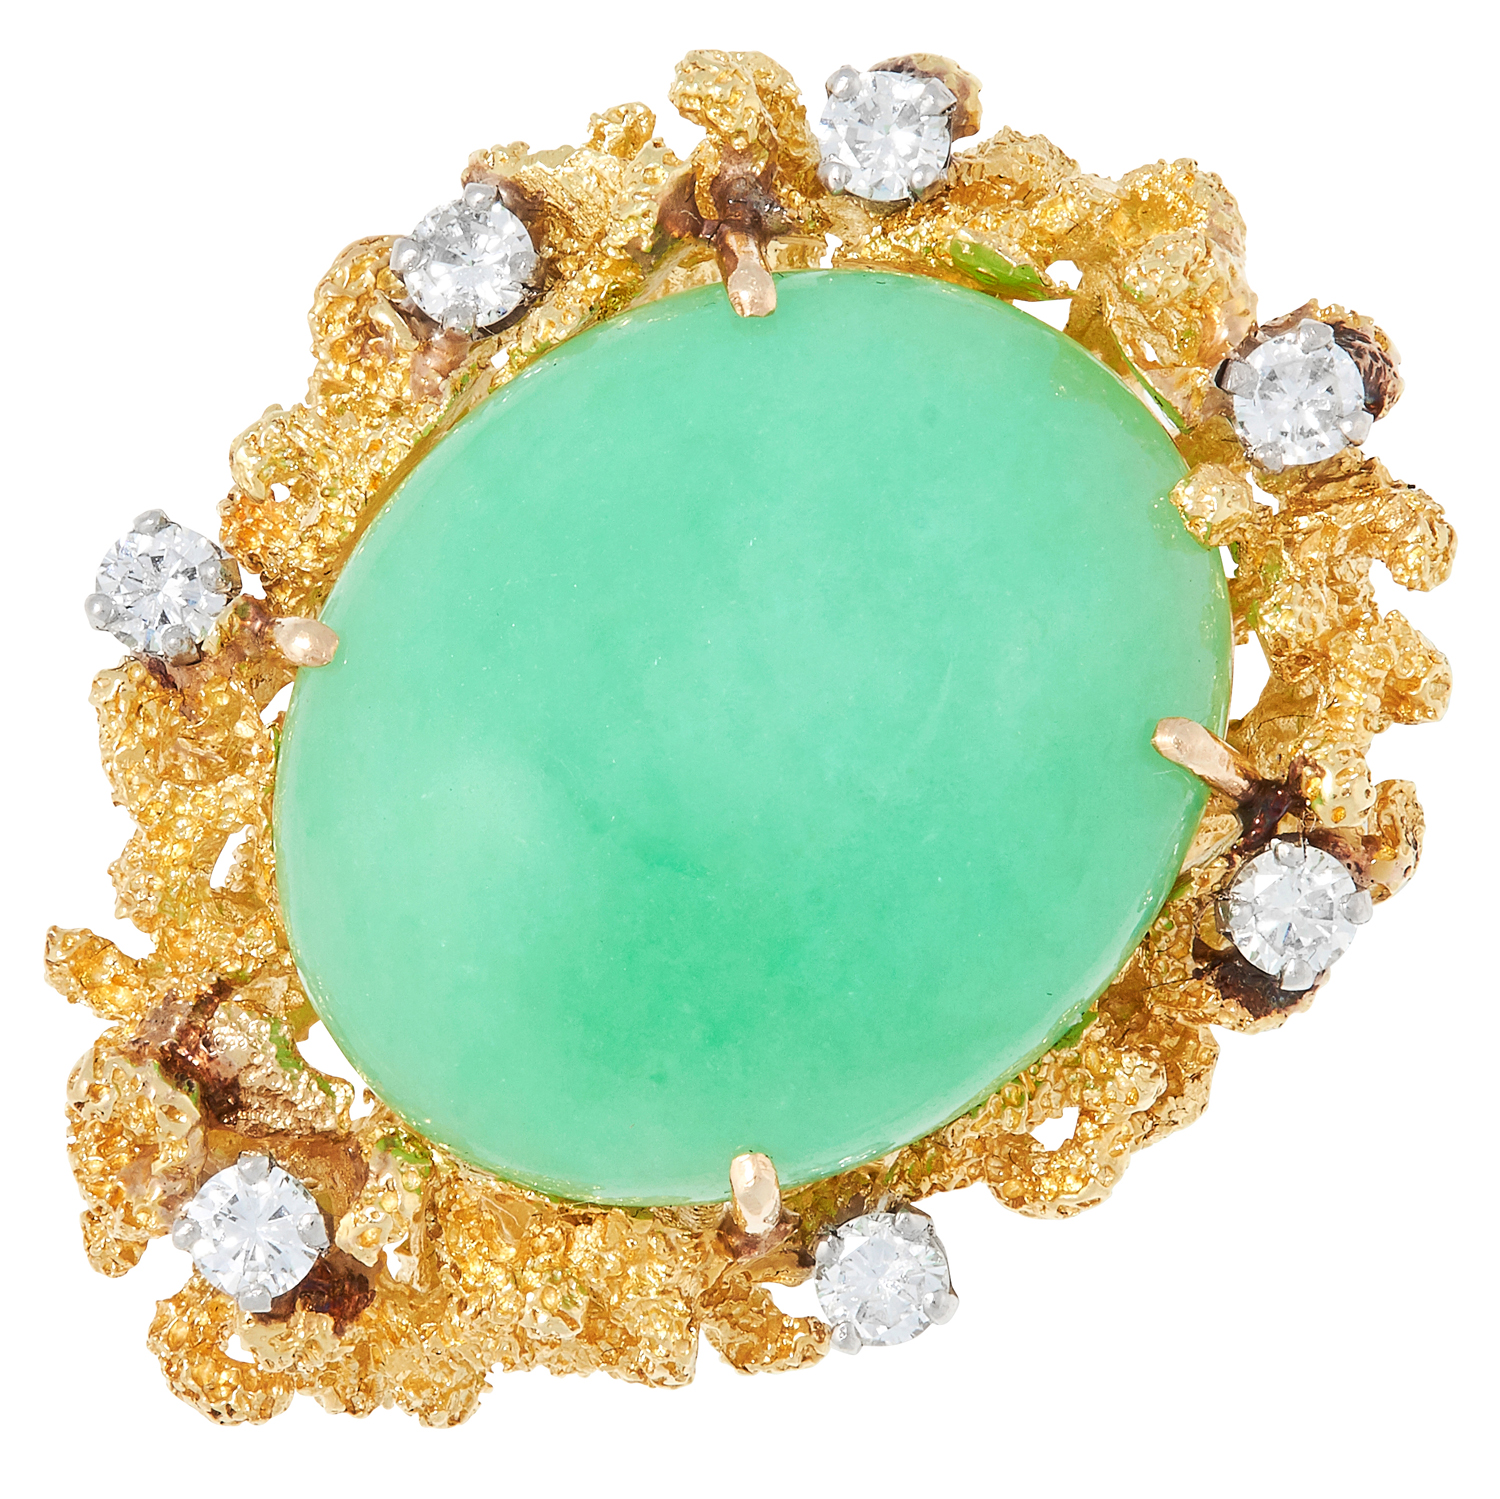 A JADEITE JADE AND DIAMOND RING, CHARLES DE TEMPLE 1973 of abstract naturalistic design set with